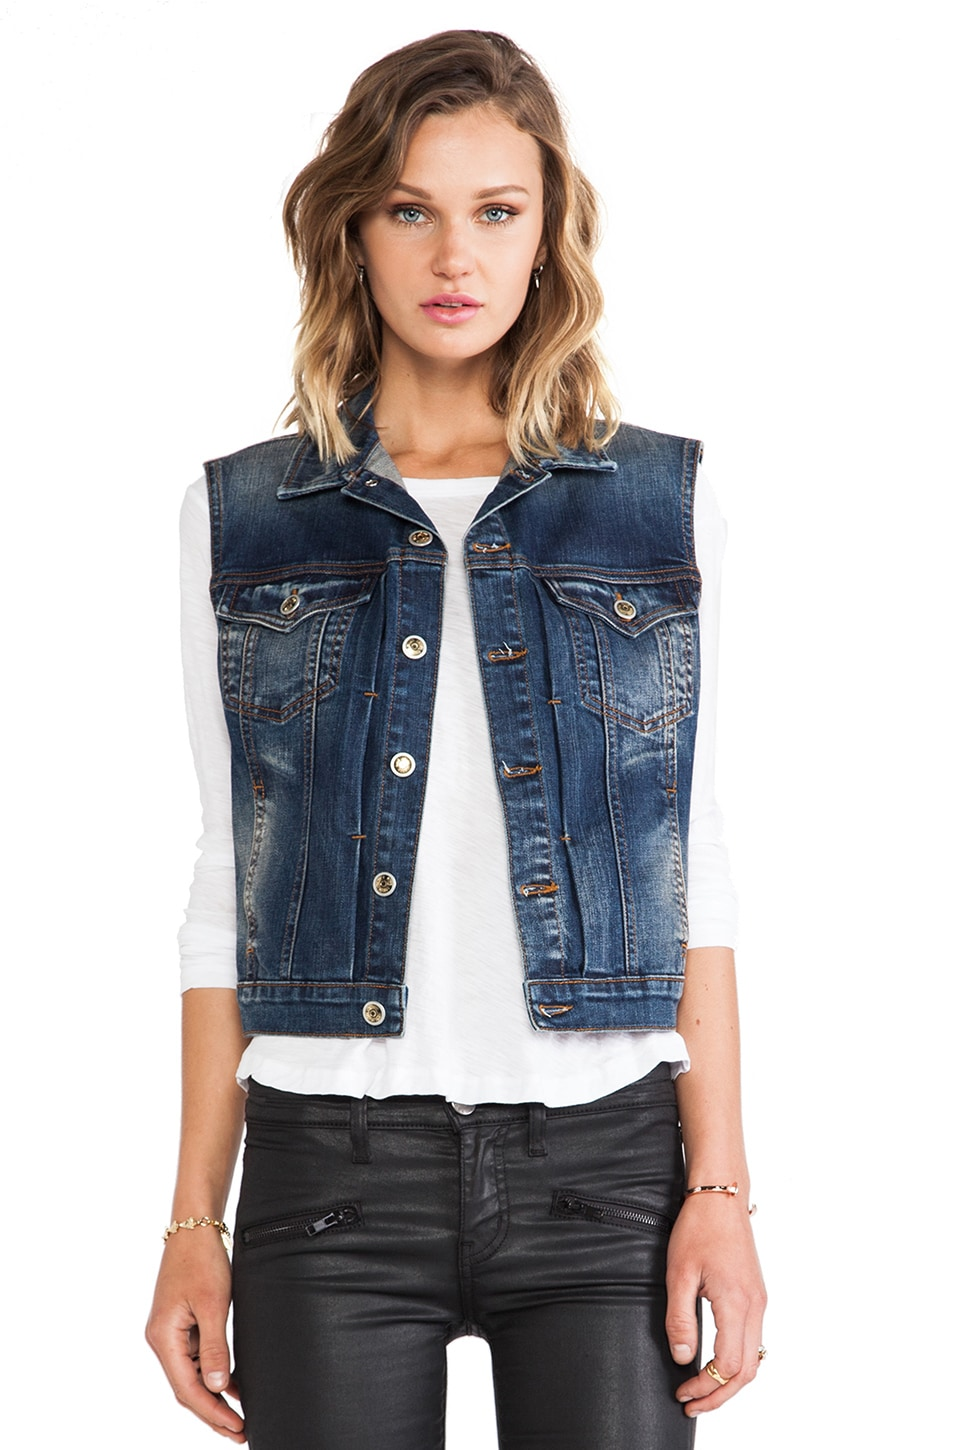 Level 99 Classic Vest in Dax